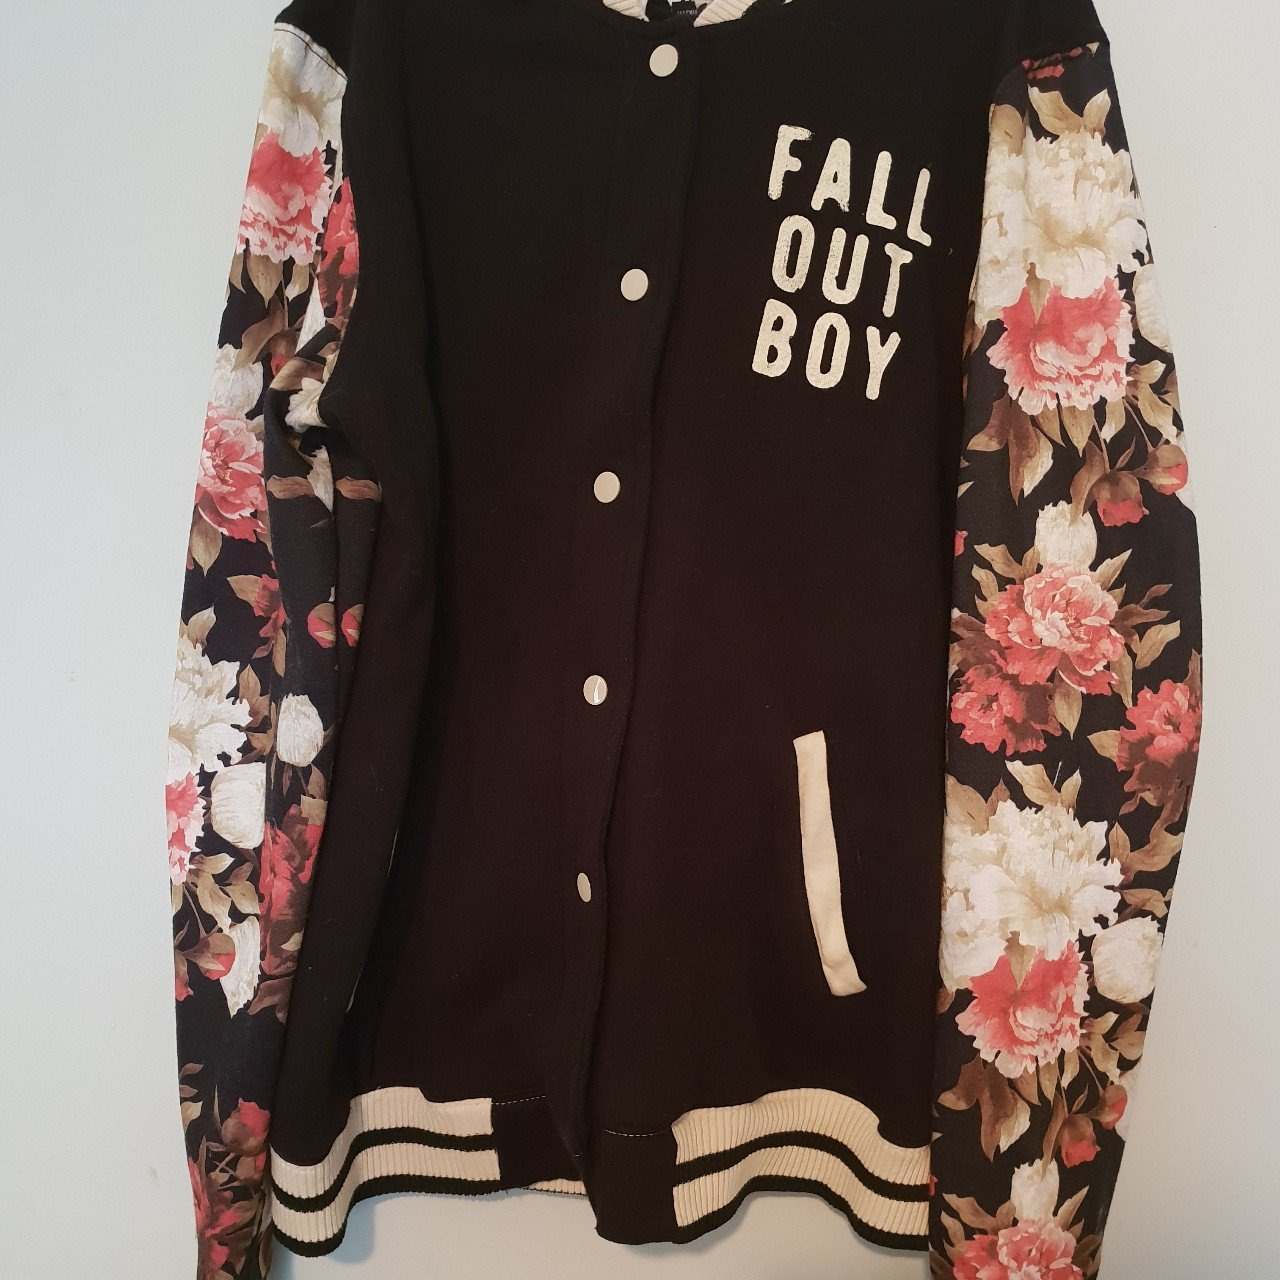 6b678d899 🖤 authentic fall out boy floral varsity jacket 🖤 NWOT